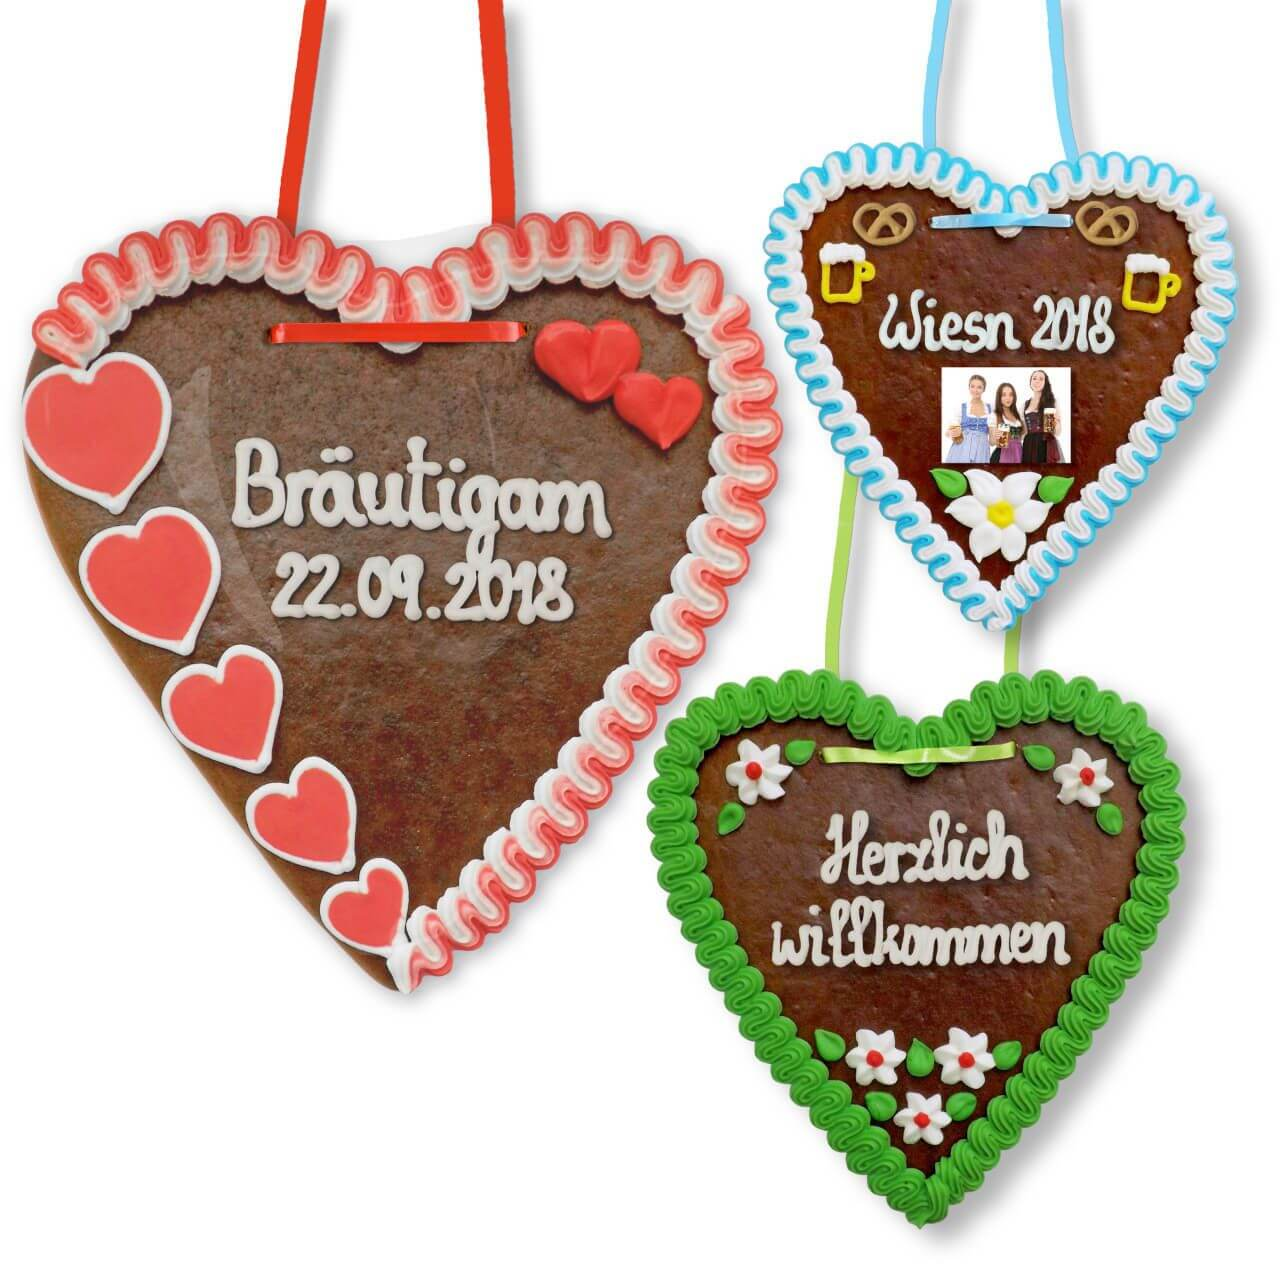 Gingerbread Heart custom made with text and picture, 21cm